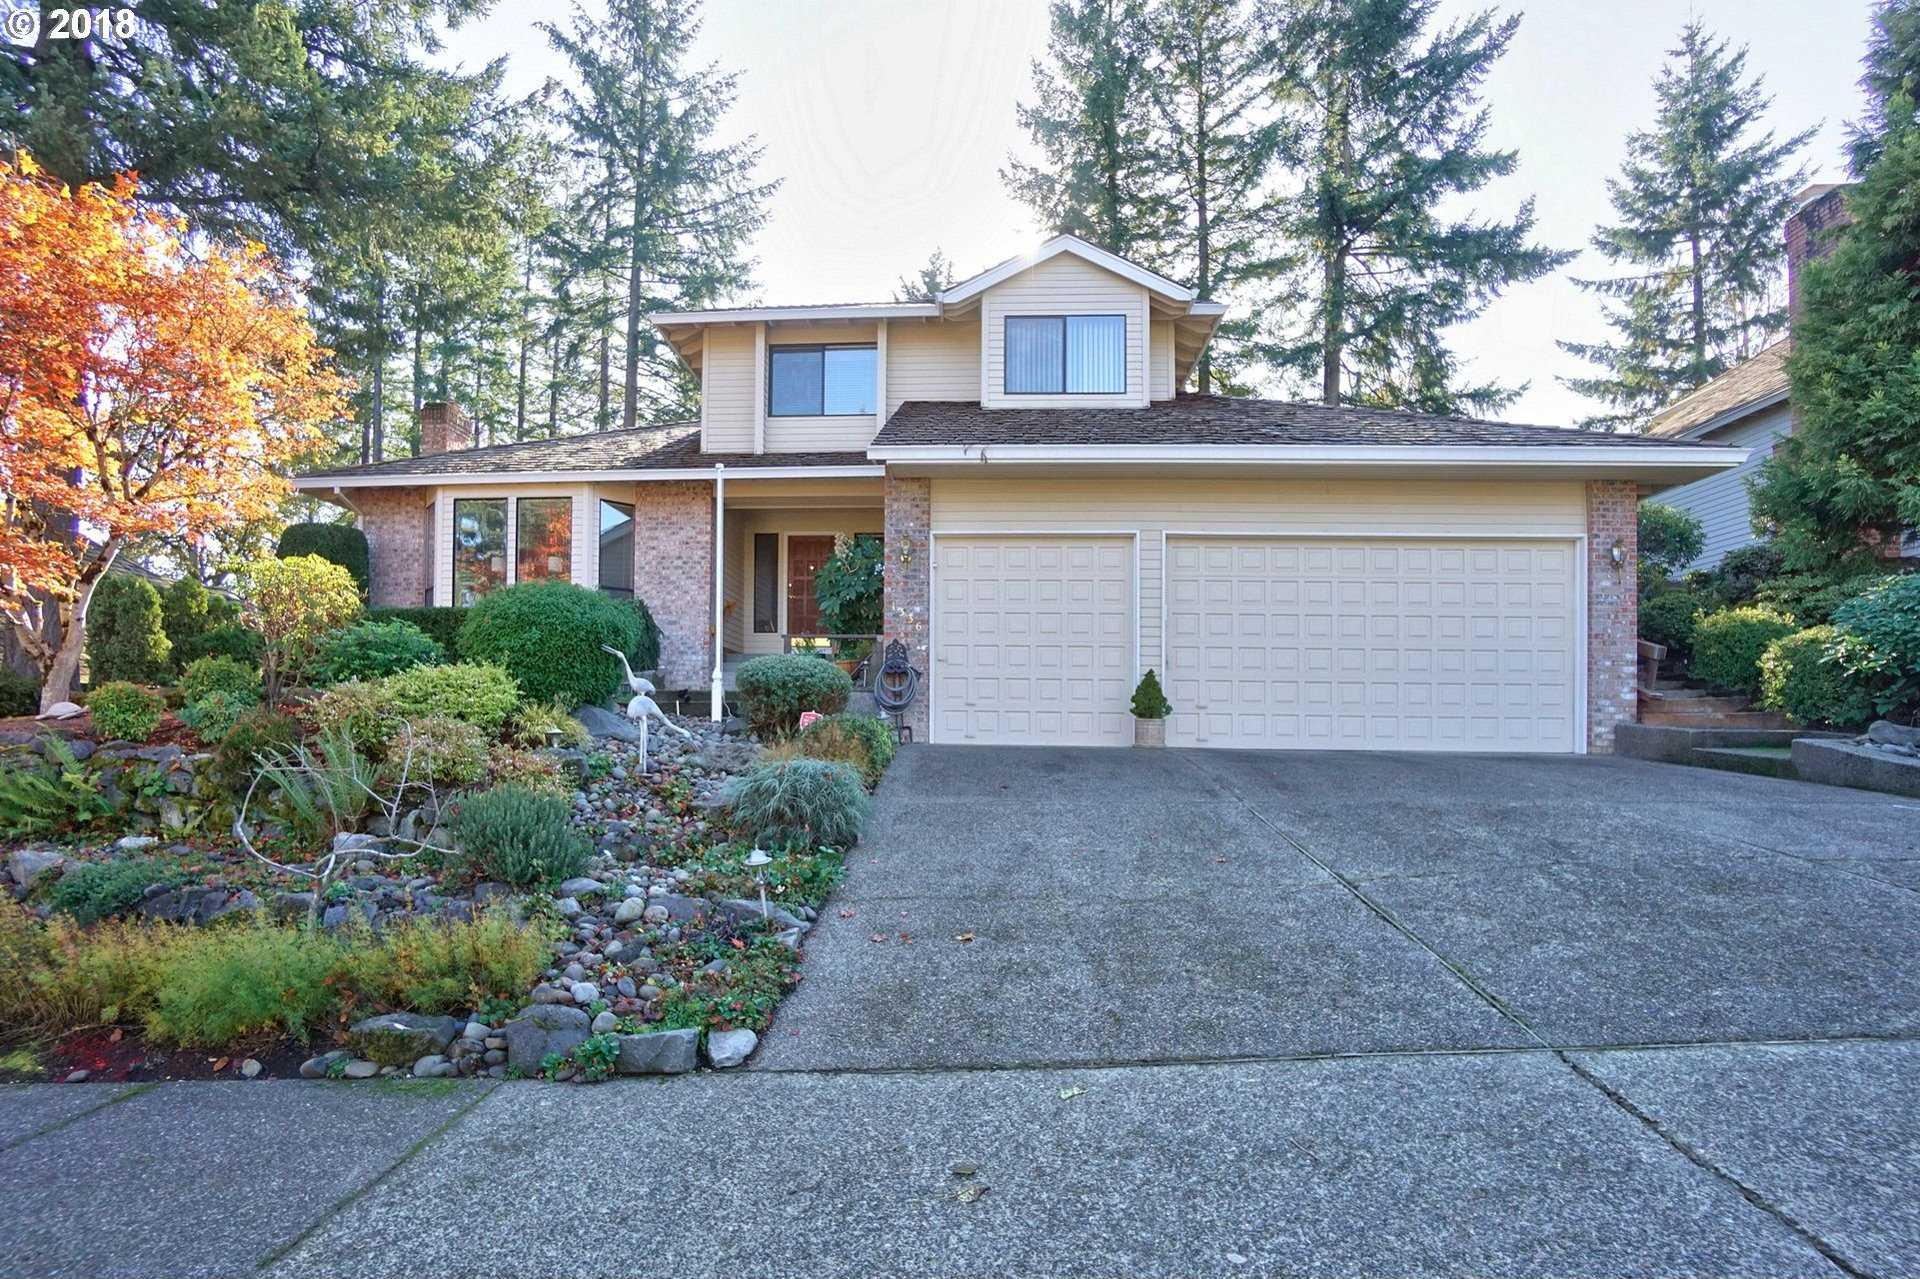 $550,000 - 4Br/3Ba -  for Sale in Skyline Ridge, West Linn